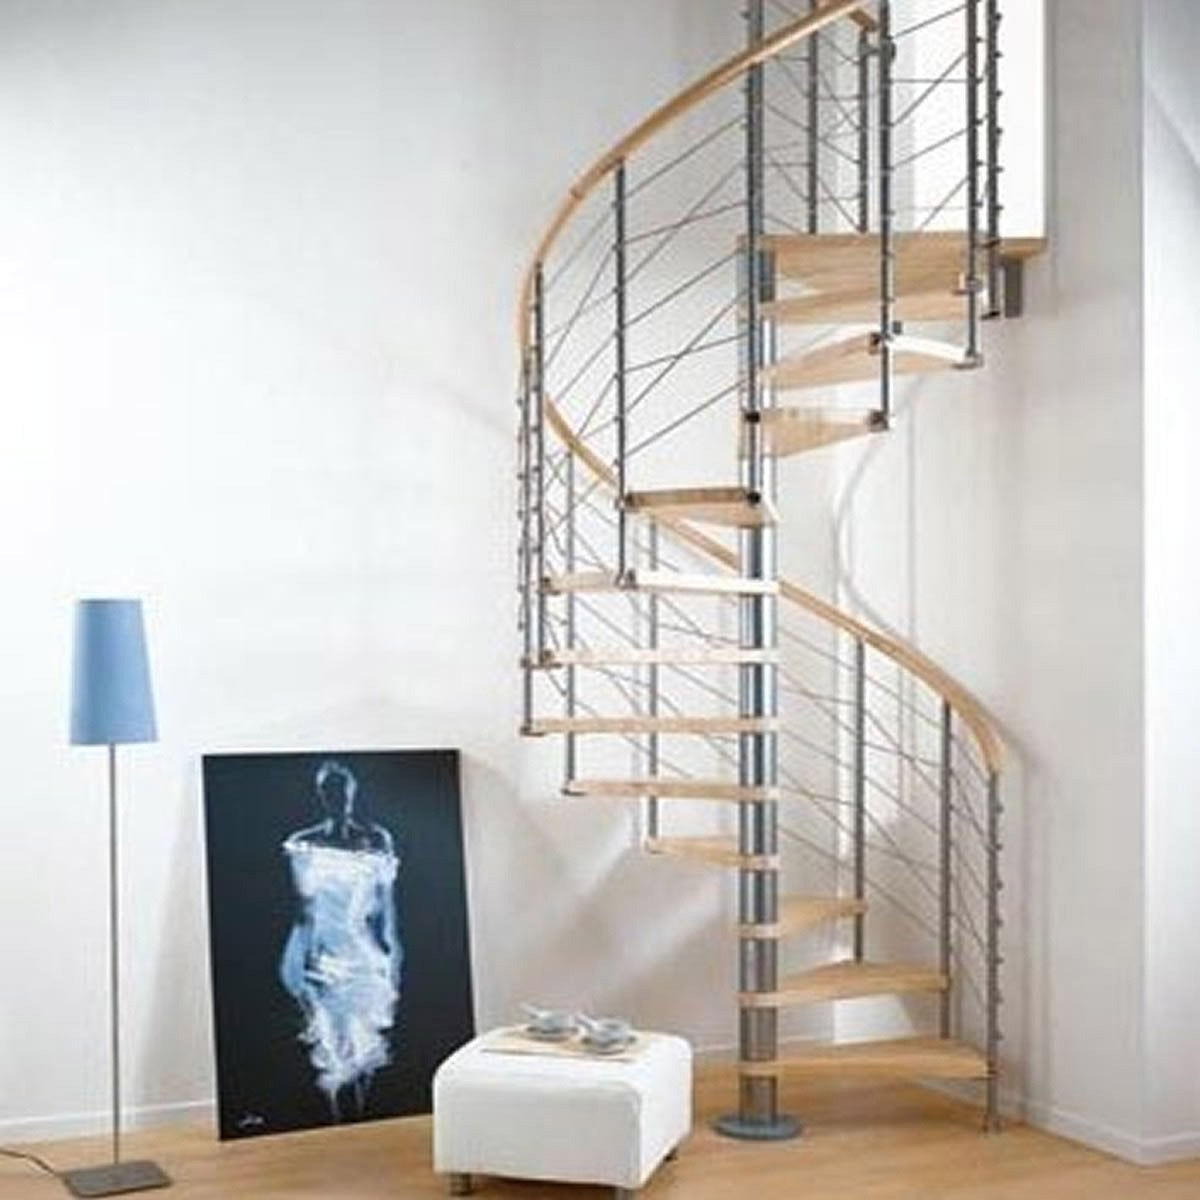 Escalier colima on rond ring line marches bois structure m tal chrom ler - Escalier colimacon plan ...